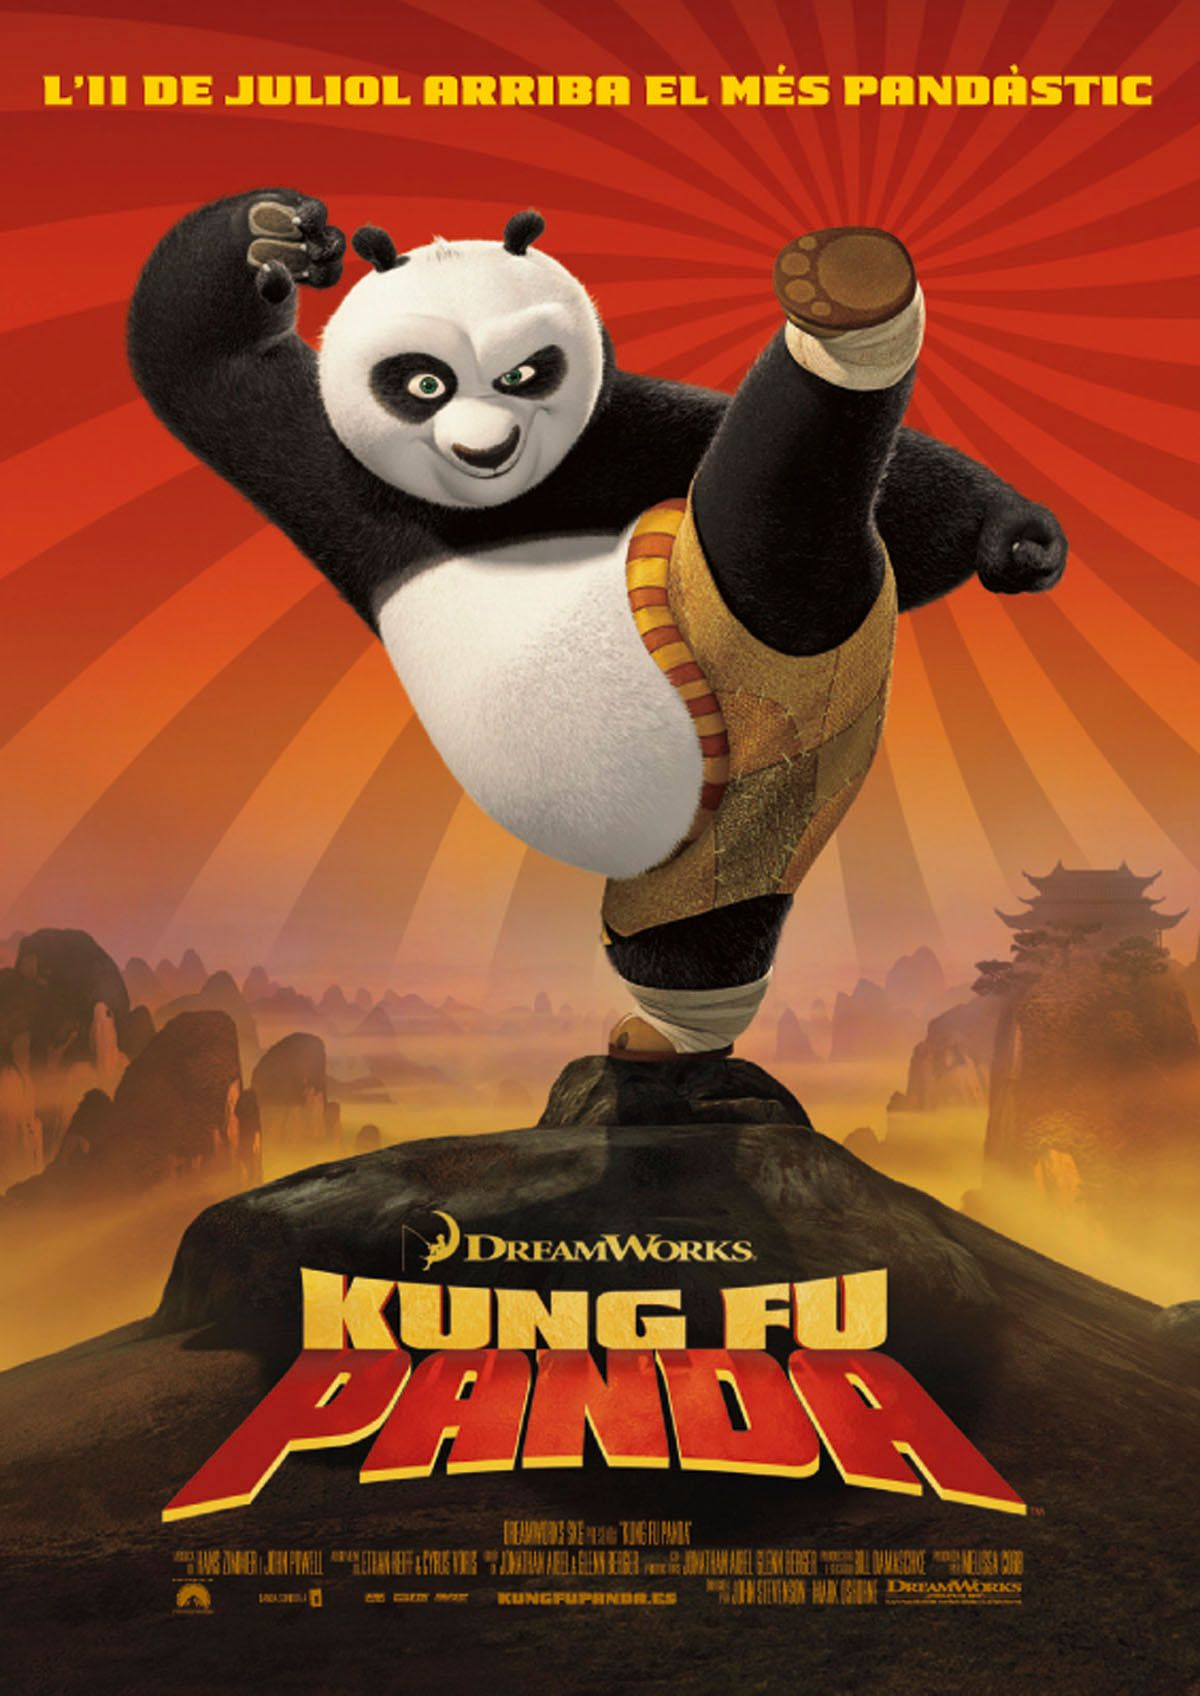 Kung fu panda new linelook amazon cartoni animati film e tv